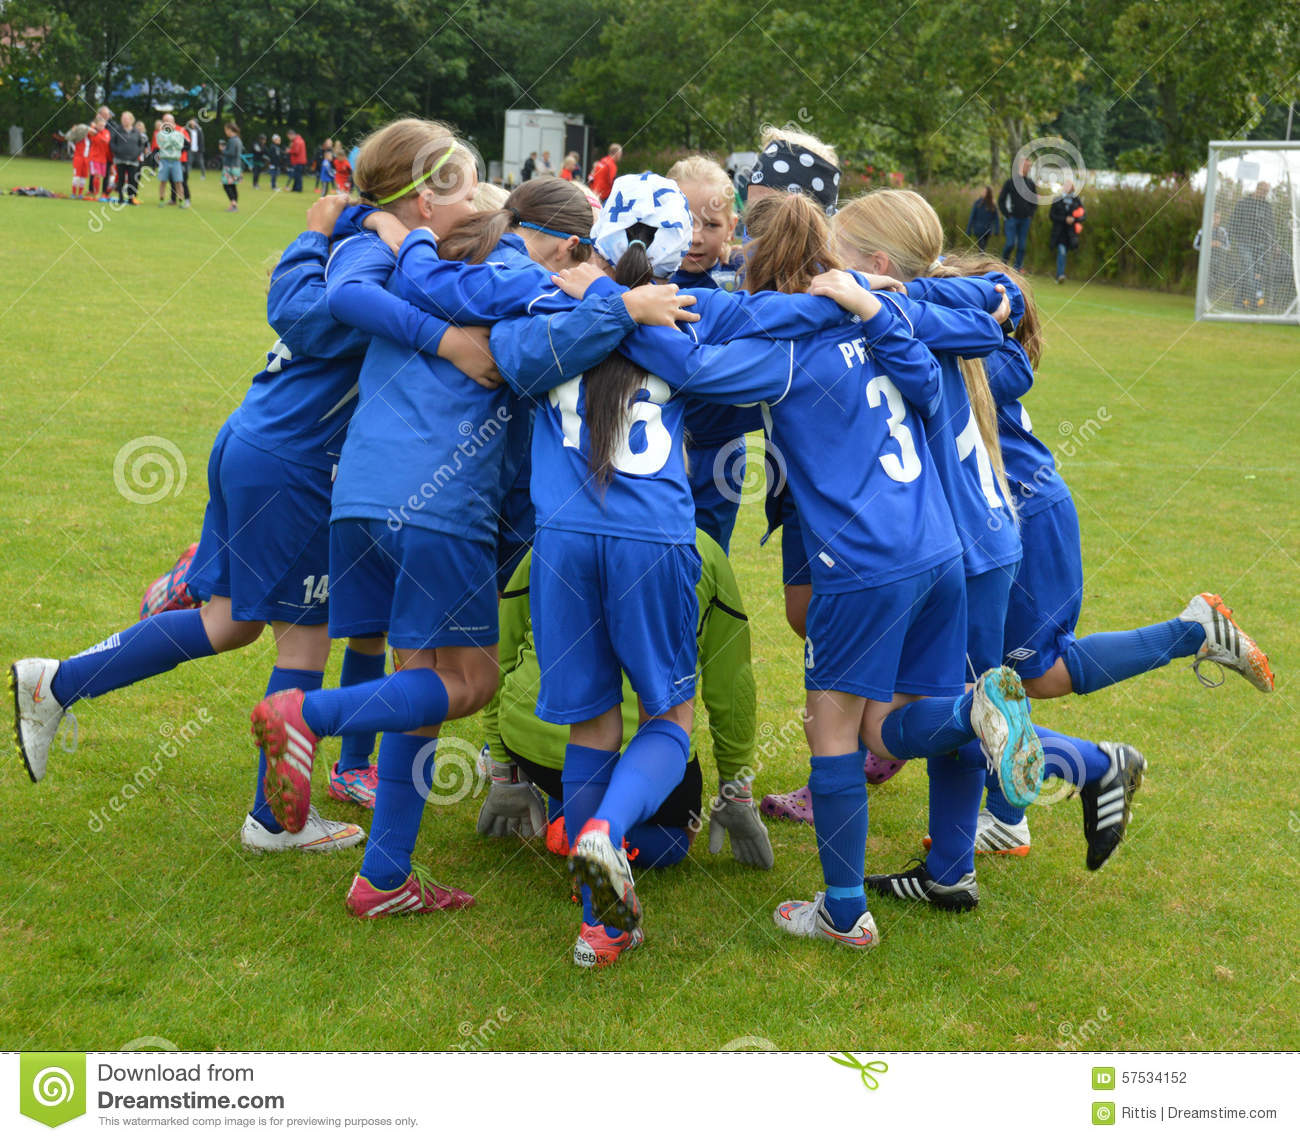 Vildbjerg, Denmark - August 2, 2015 - Junior Female Soccer Player ...